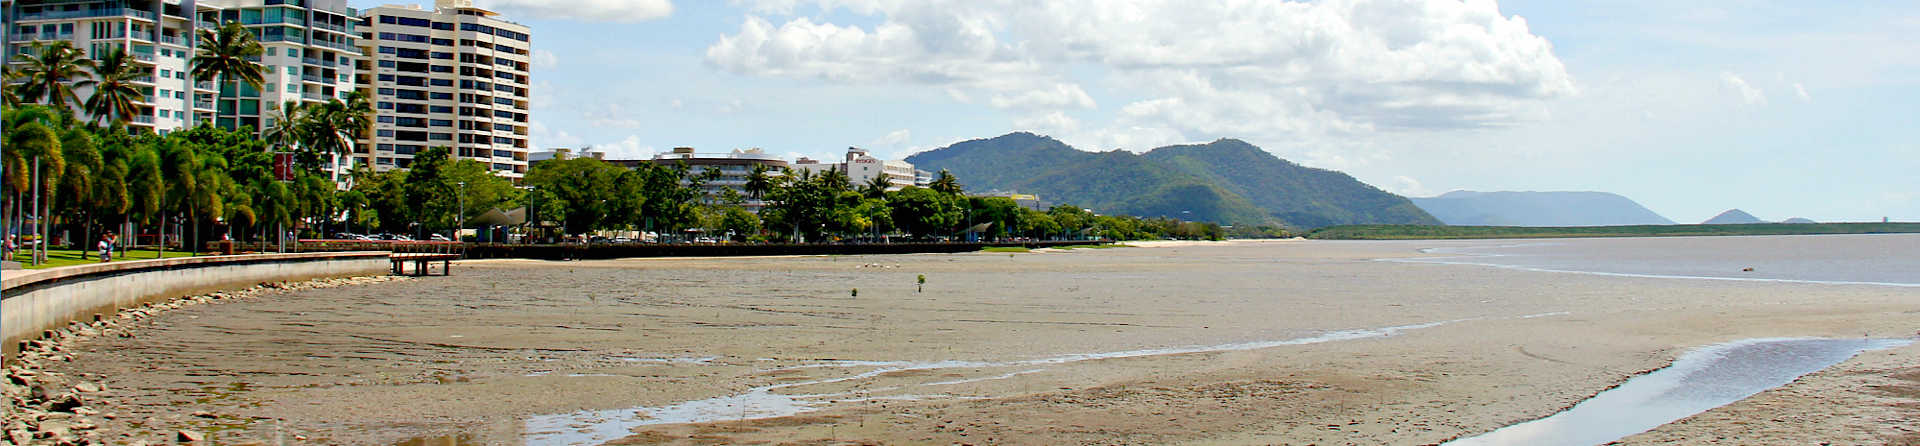 How do I spend a day in Cairns?